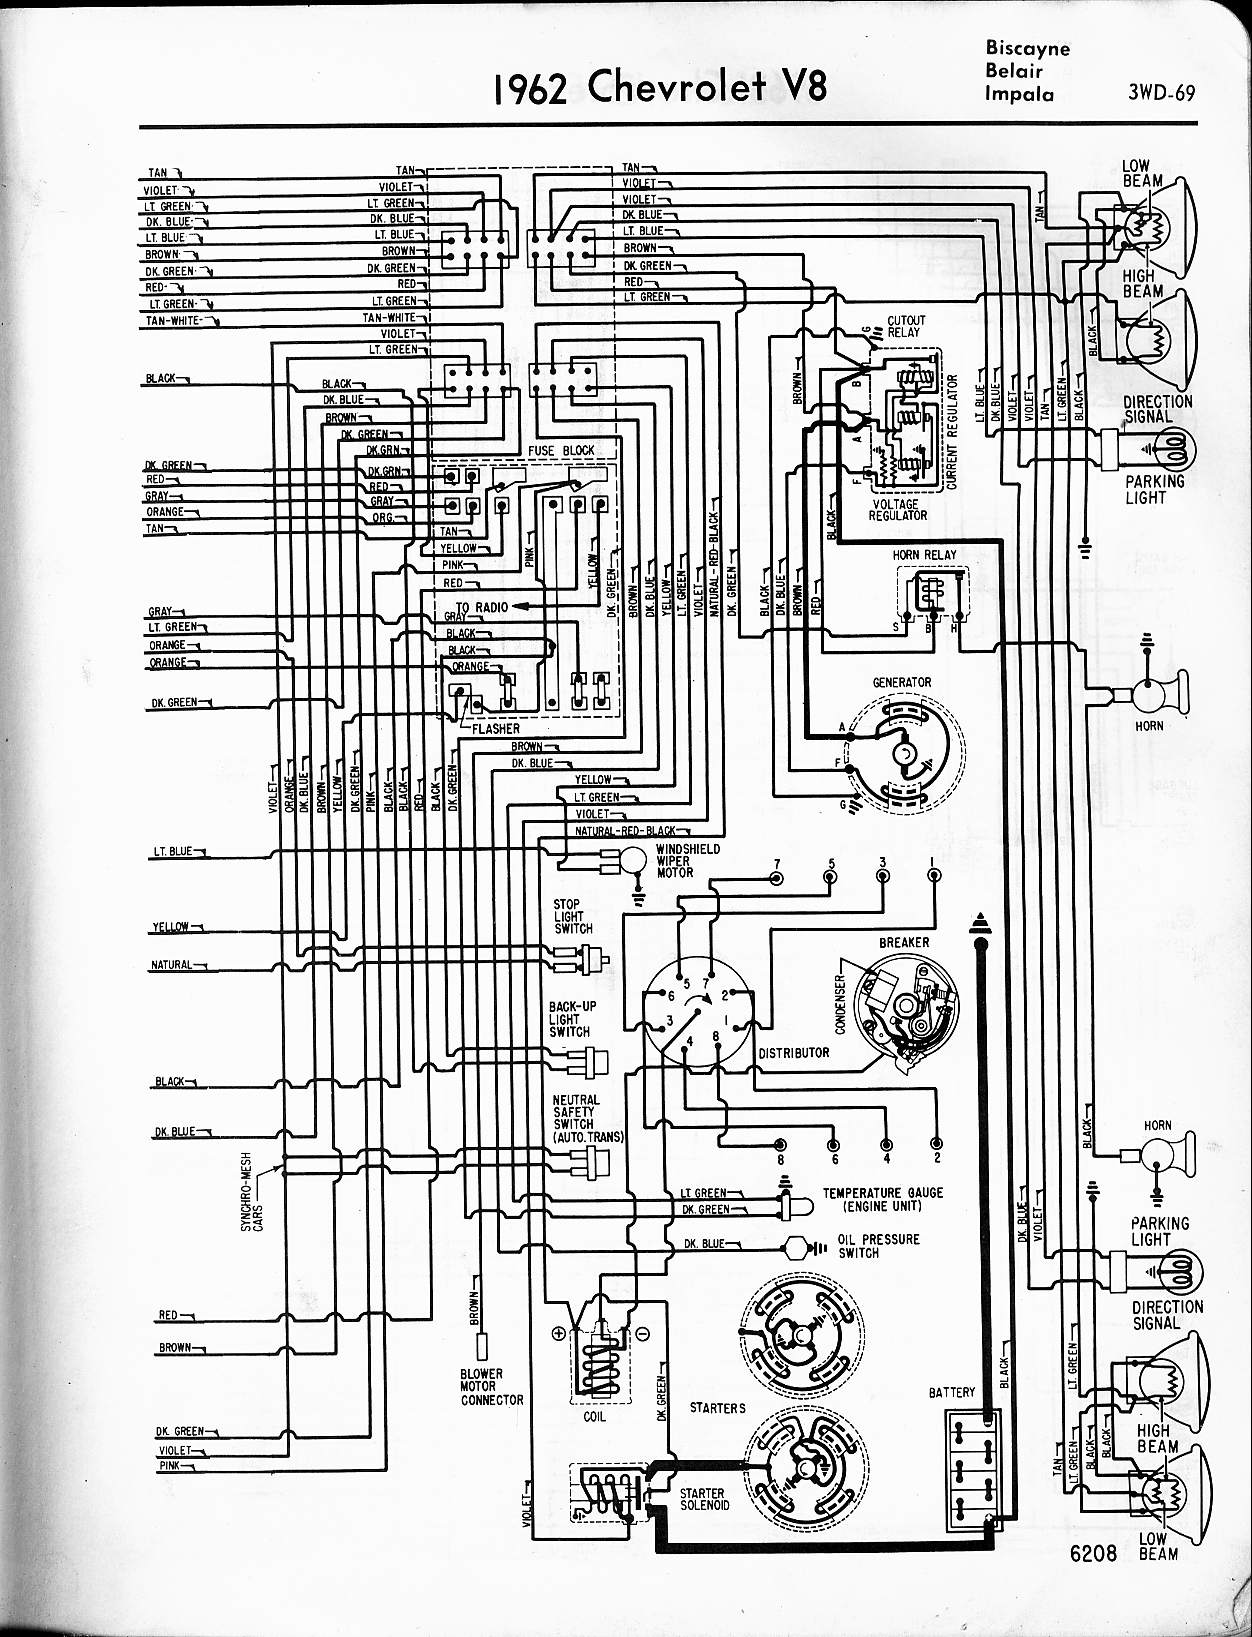 1964 chevelle wiring diagram wiring diagram u2022 rh championapp co 1968 Camaro Wiring Diagram 1966 Chevelle Dash Wiring Diagram